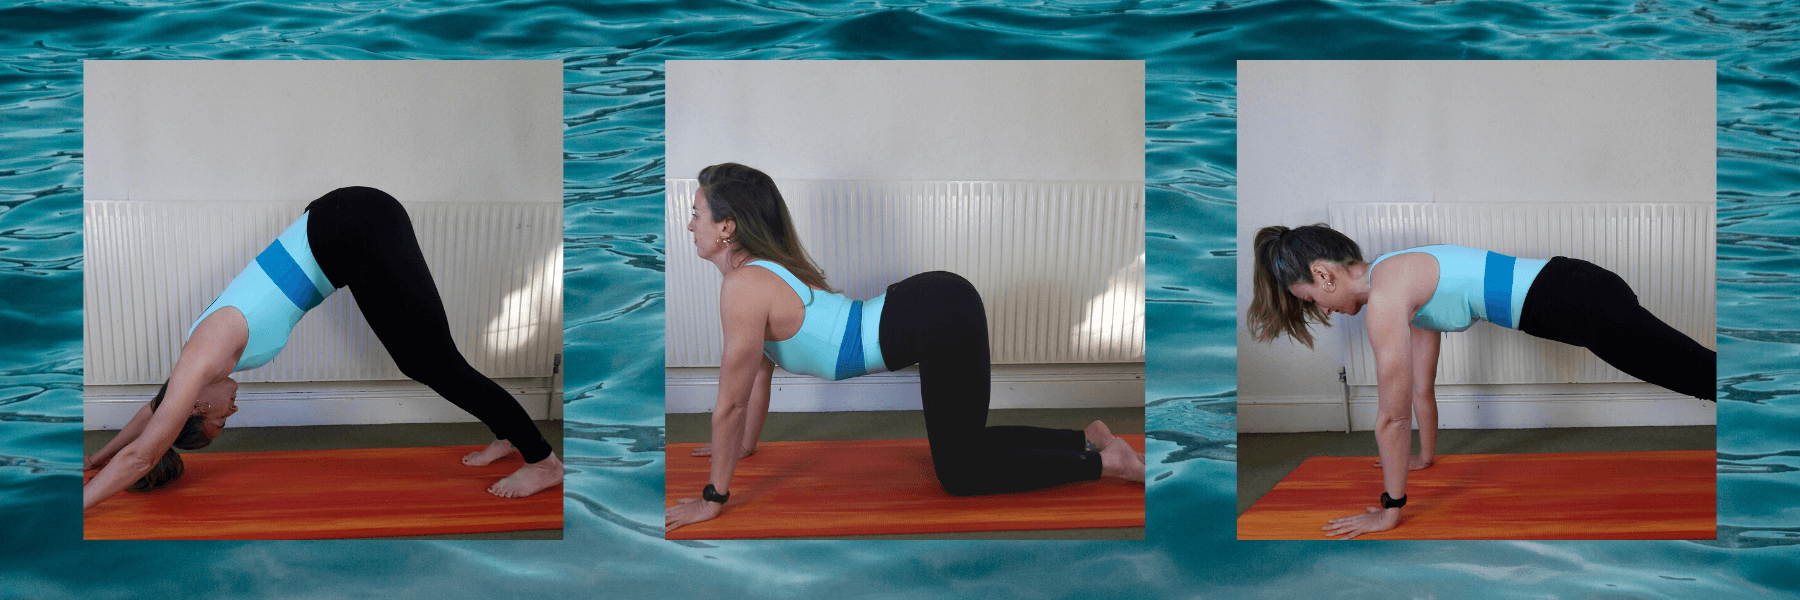 5 Easy Yoga Poses For Beginners